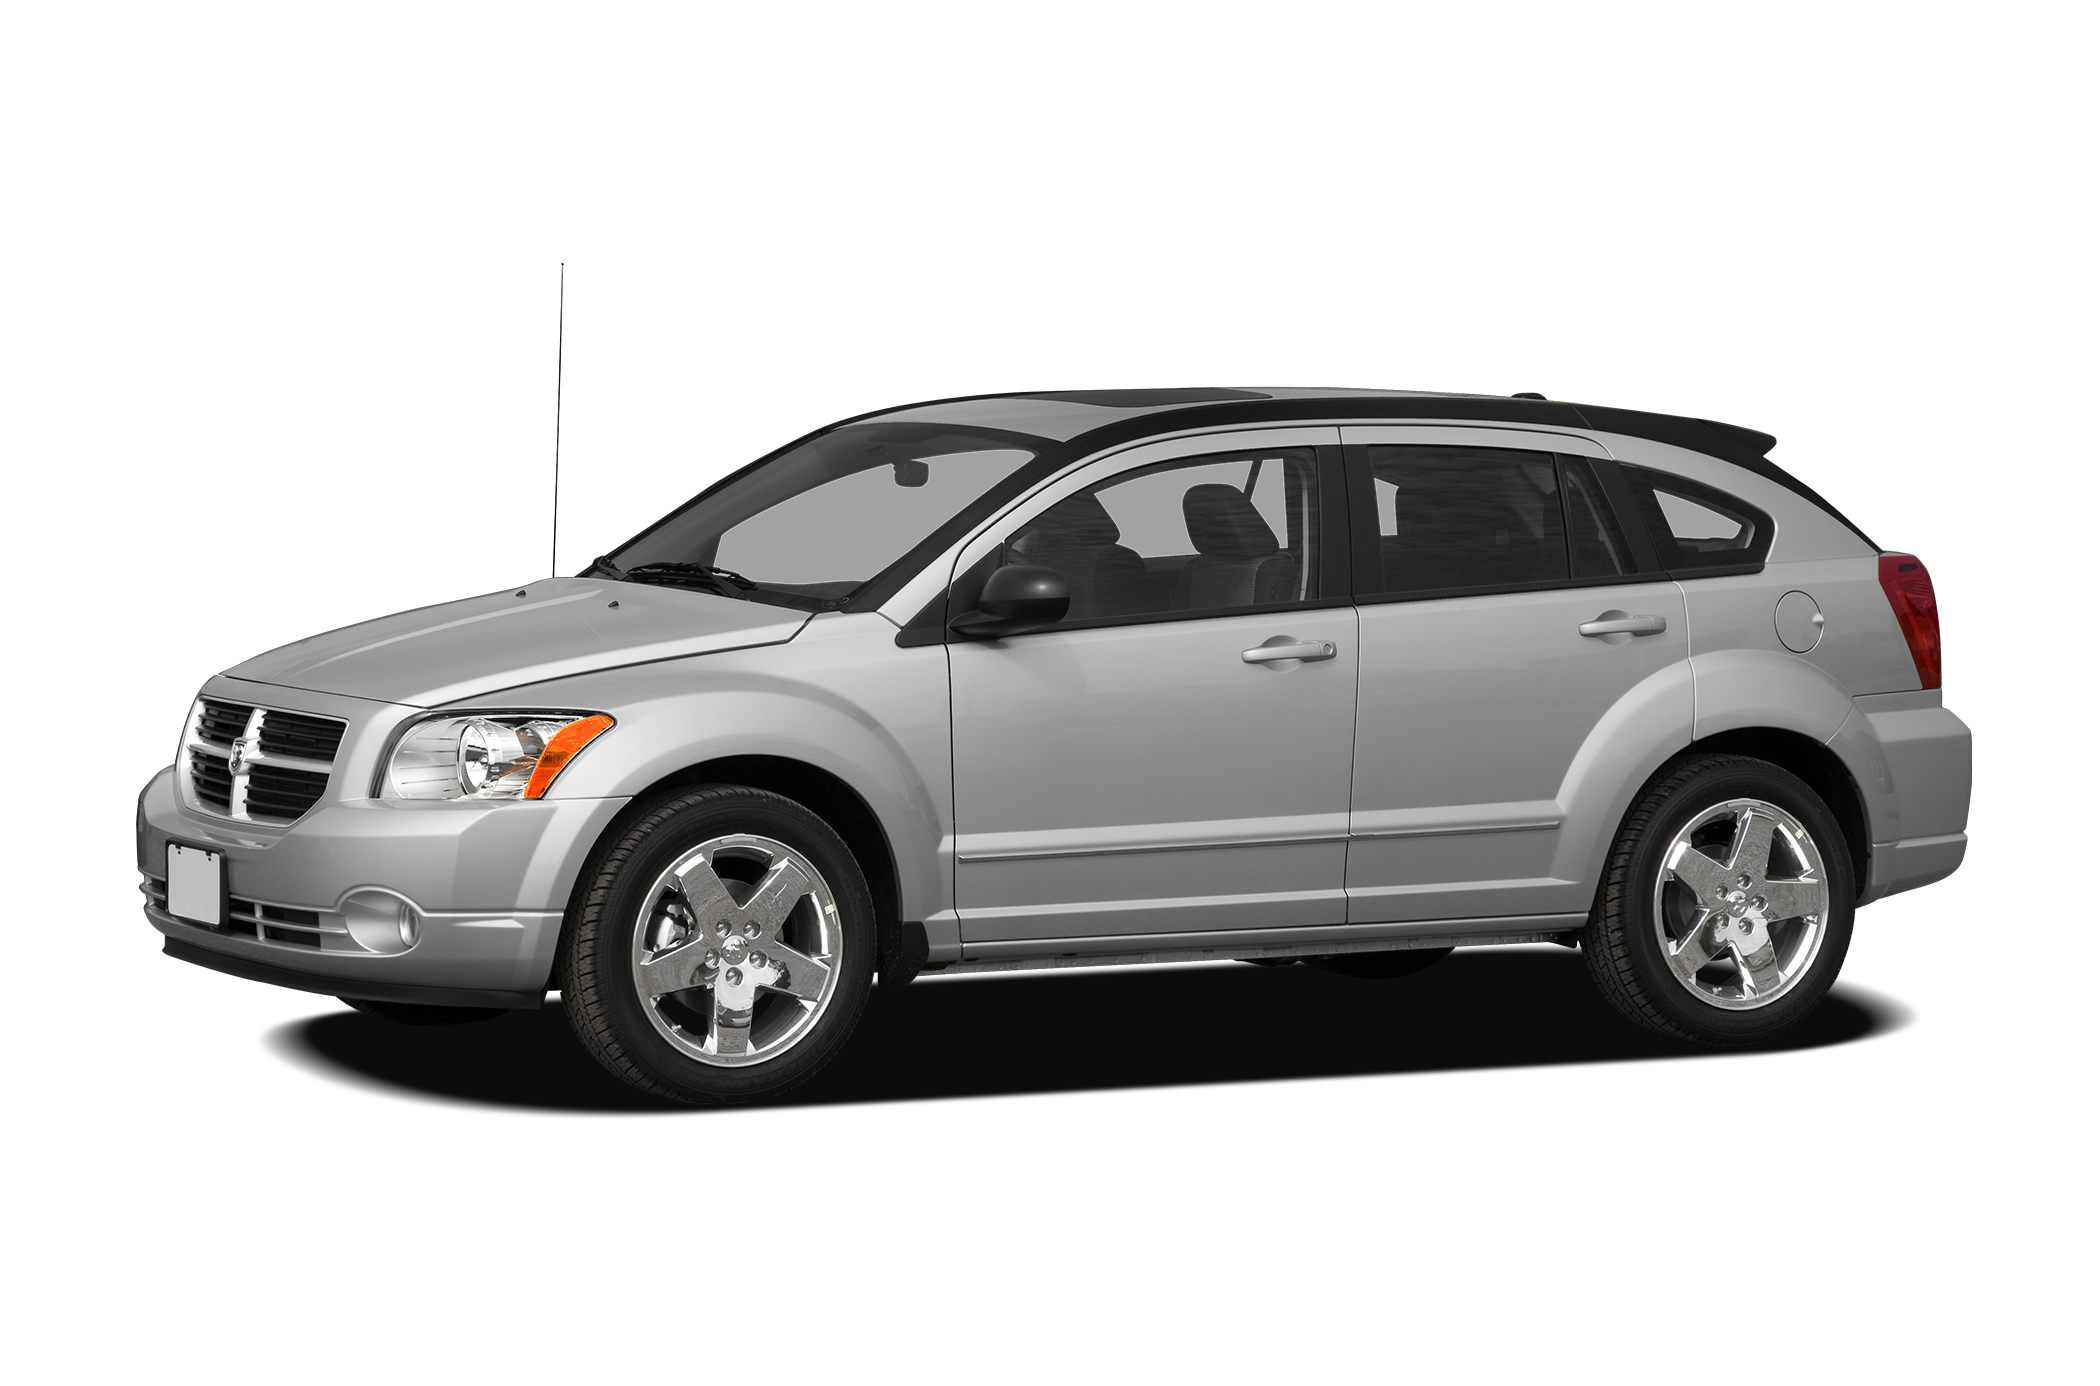 2011 Dodge Caliber Heat Hatchback for sale in Malvern for $0 with 69,699 miles